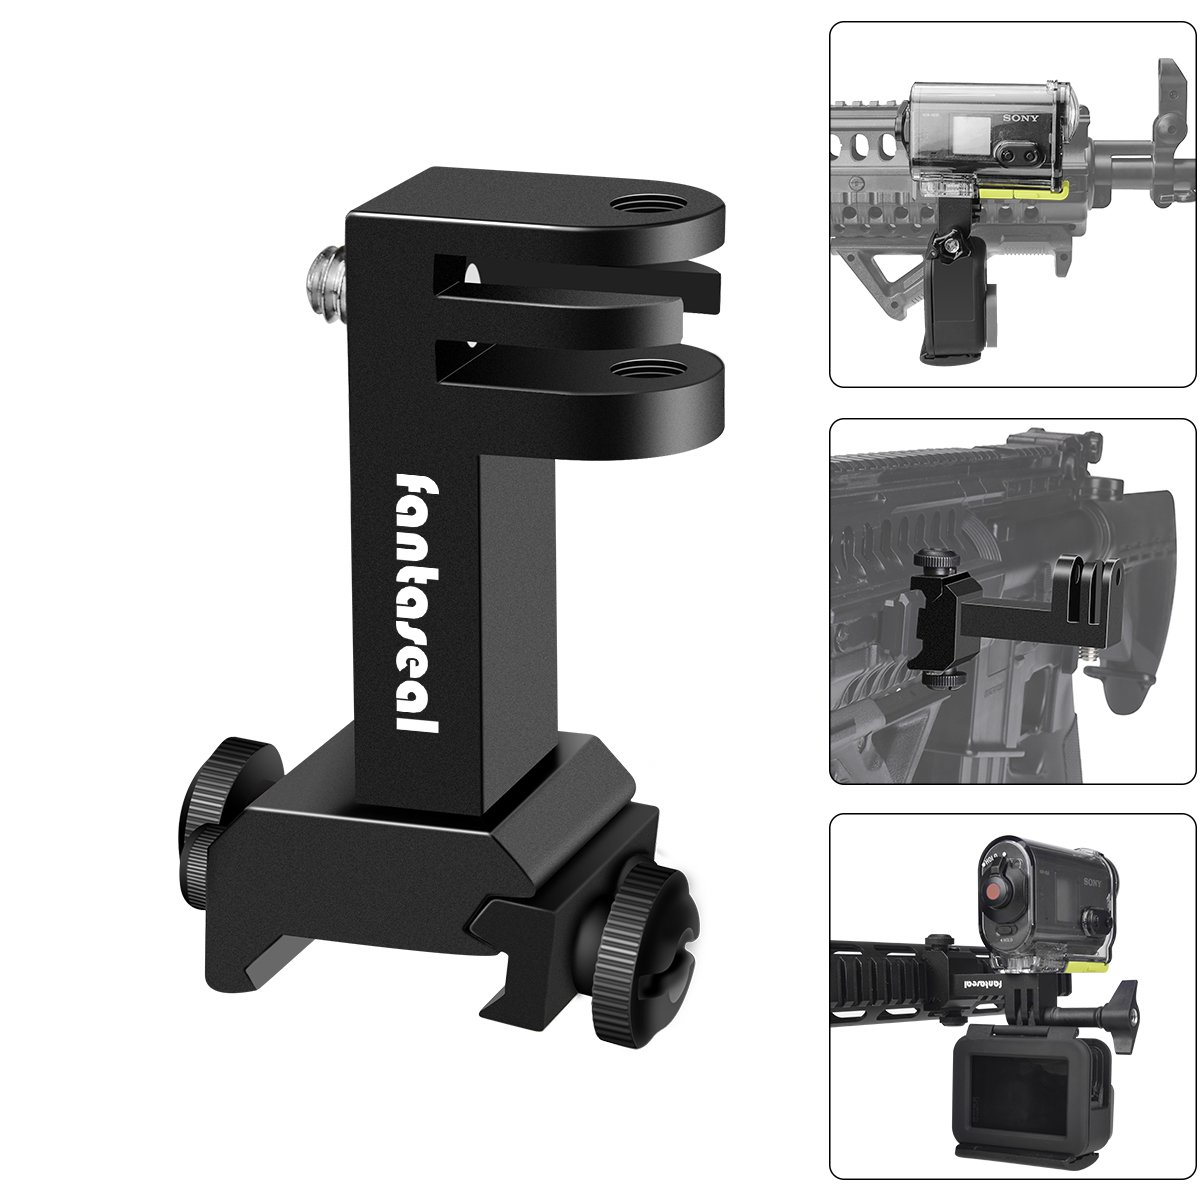 2in1 Action Camera Side Gun Mount Picatinny Rail Adapter Kit Compatible with Gopro Hero 6/5/4 SONY FDX HDR for Shotgun Hunting Rifle Pistol Carbine Airsoft Sports Camera Gun Rail Mount